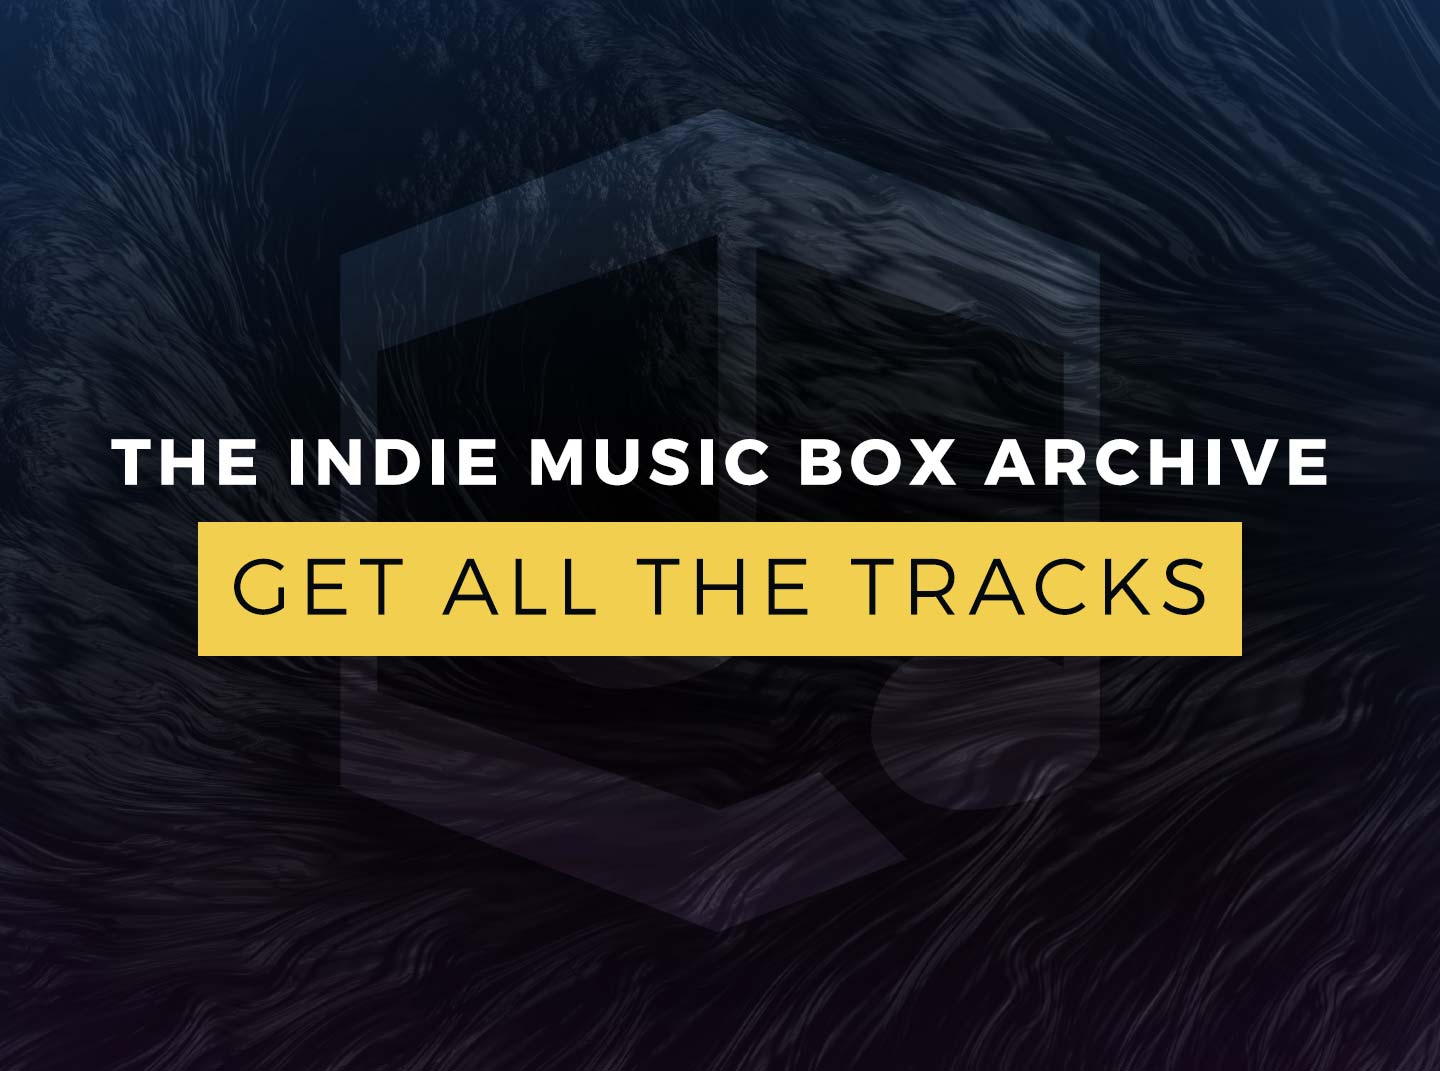 The Indie Music Box Archive